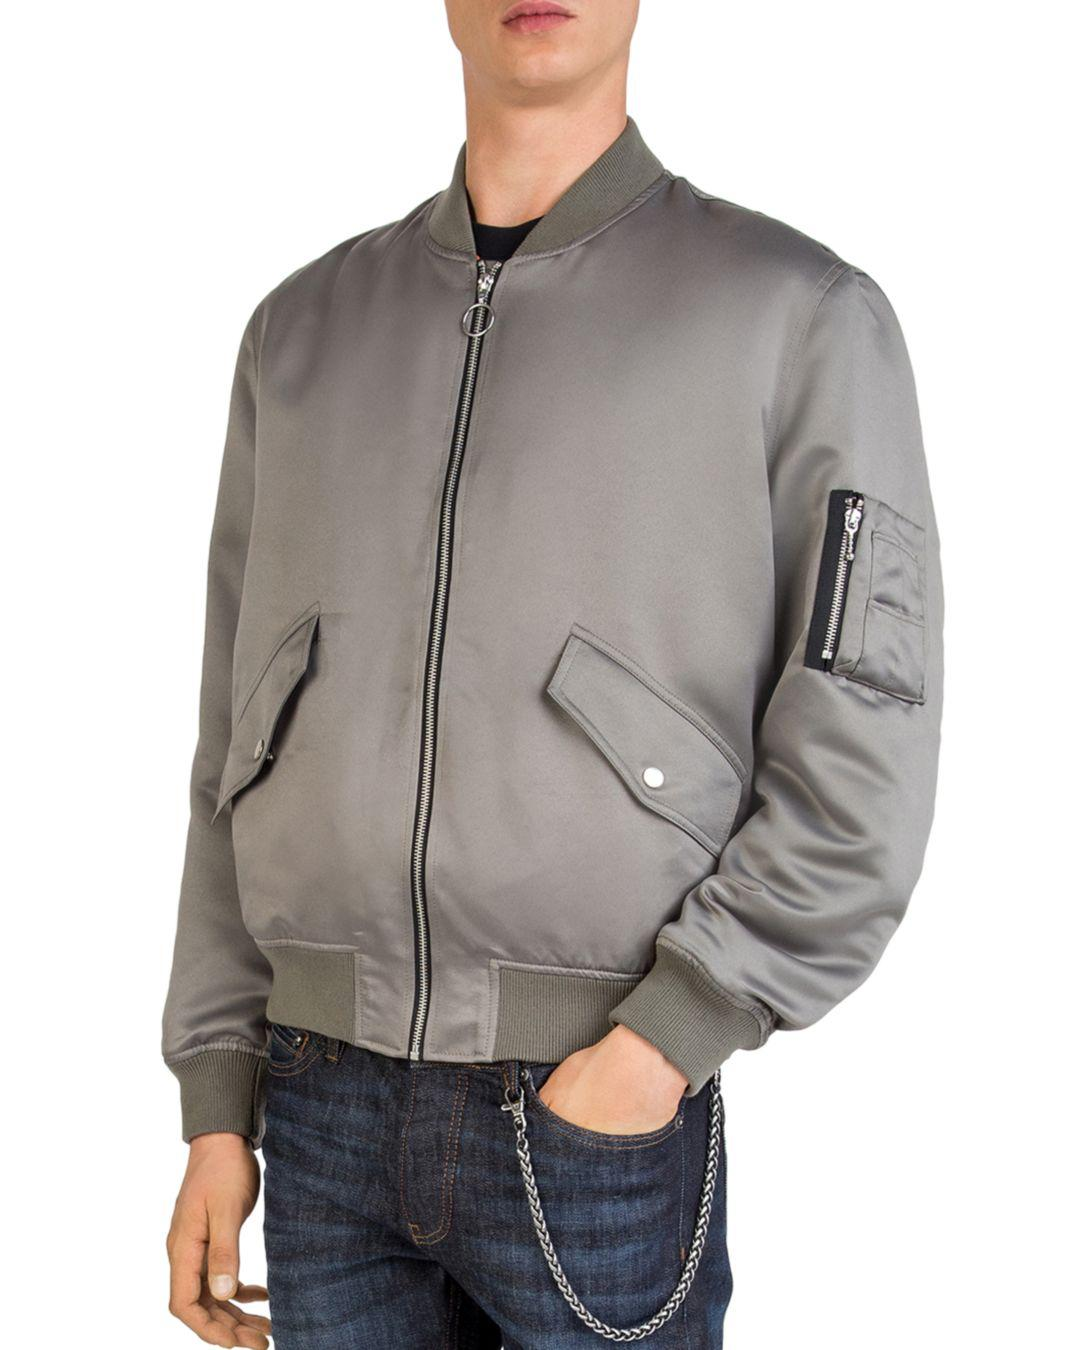 2a5d5e4bfdca9a The Kooples The Monster Blouson Bomber Jacket in Gray for Men - Lyst